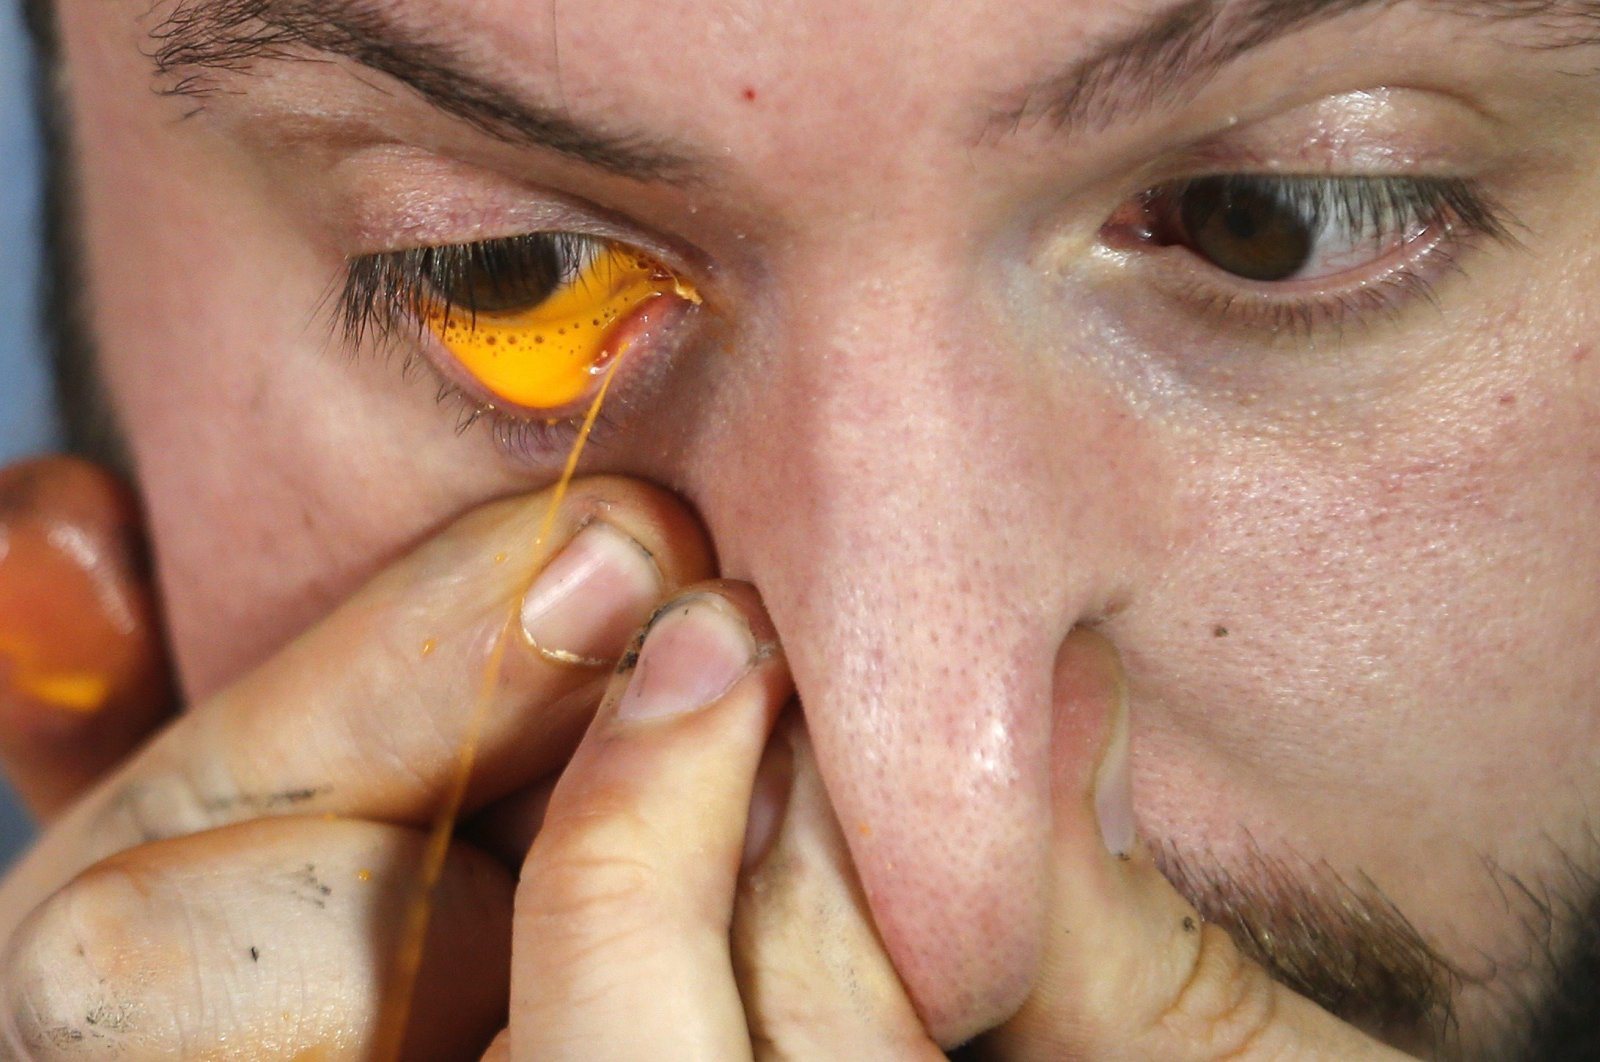 Artist Leandro Granato squirts paint from his eye onto a canvas at his studio in the Alejandro Korn town in greater Buenos Aires, Argentina, Oct.10, 2013. (REUTERS Photo)